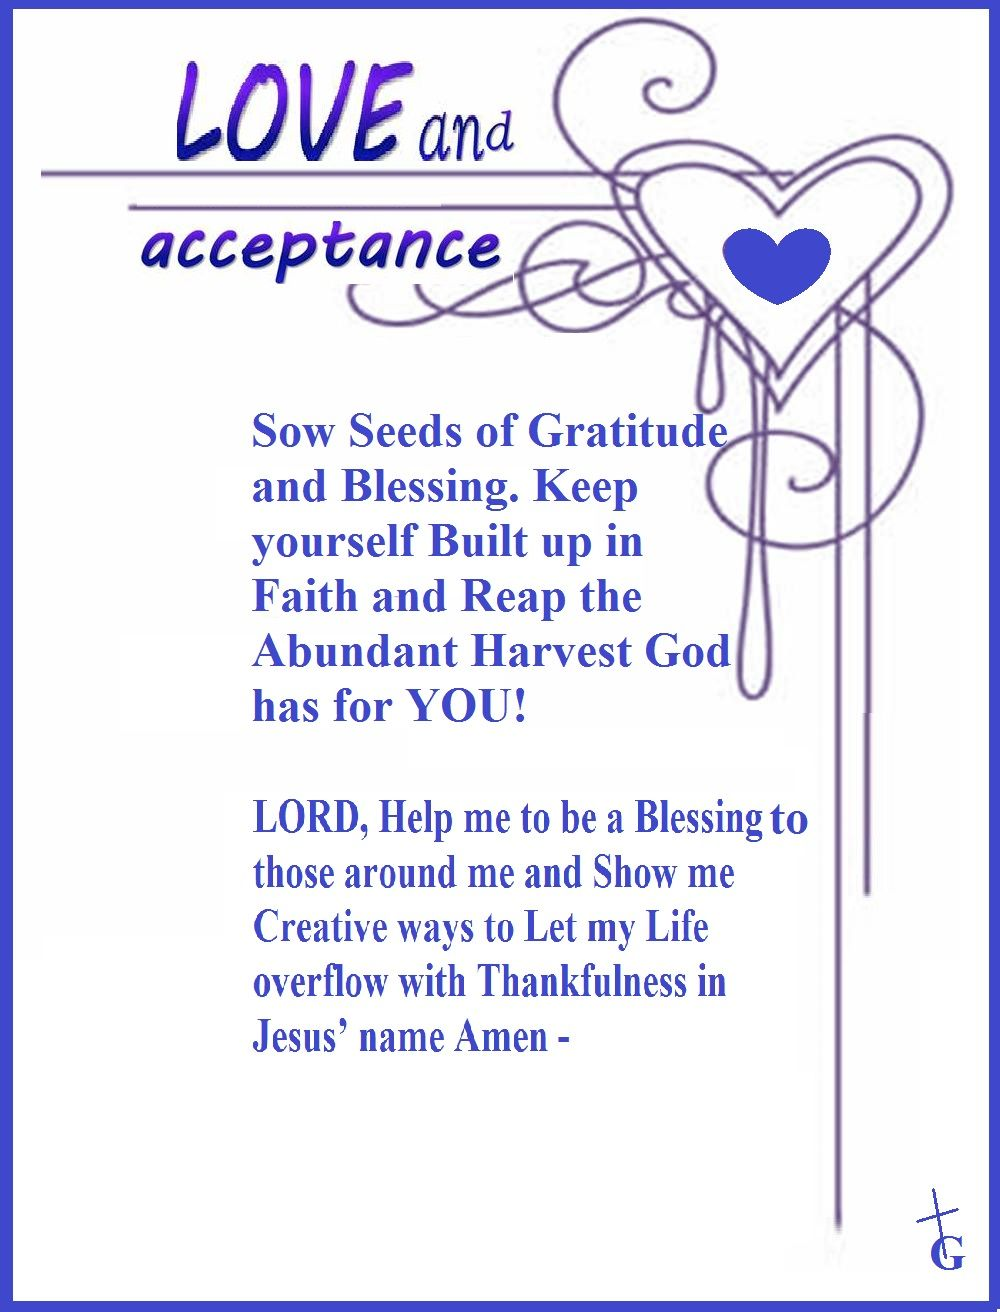 Love and Acceptance!